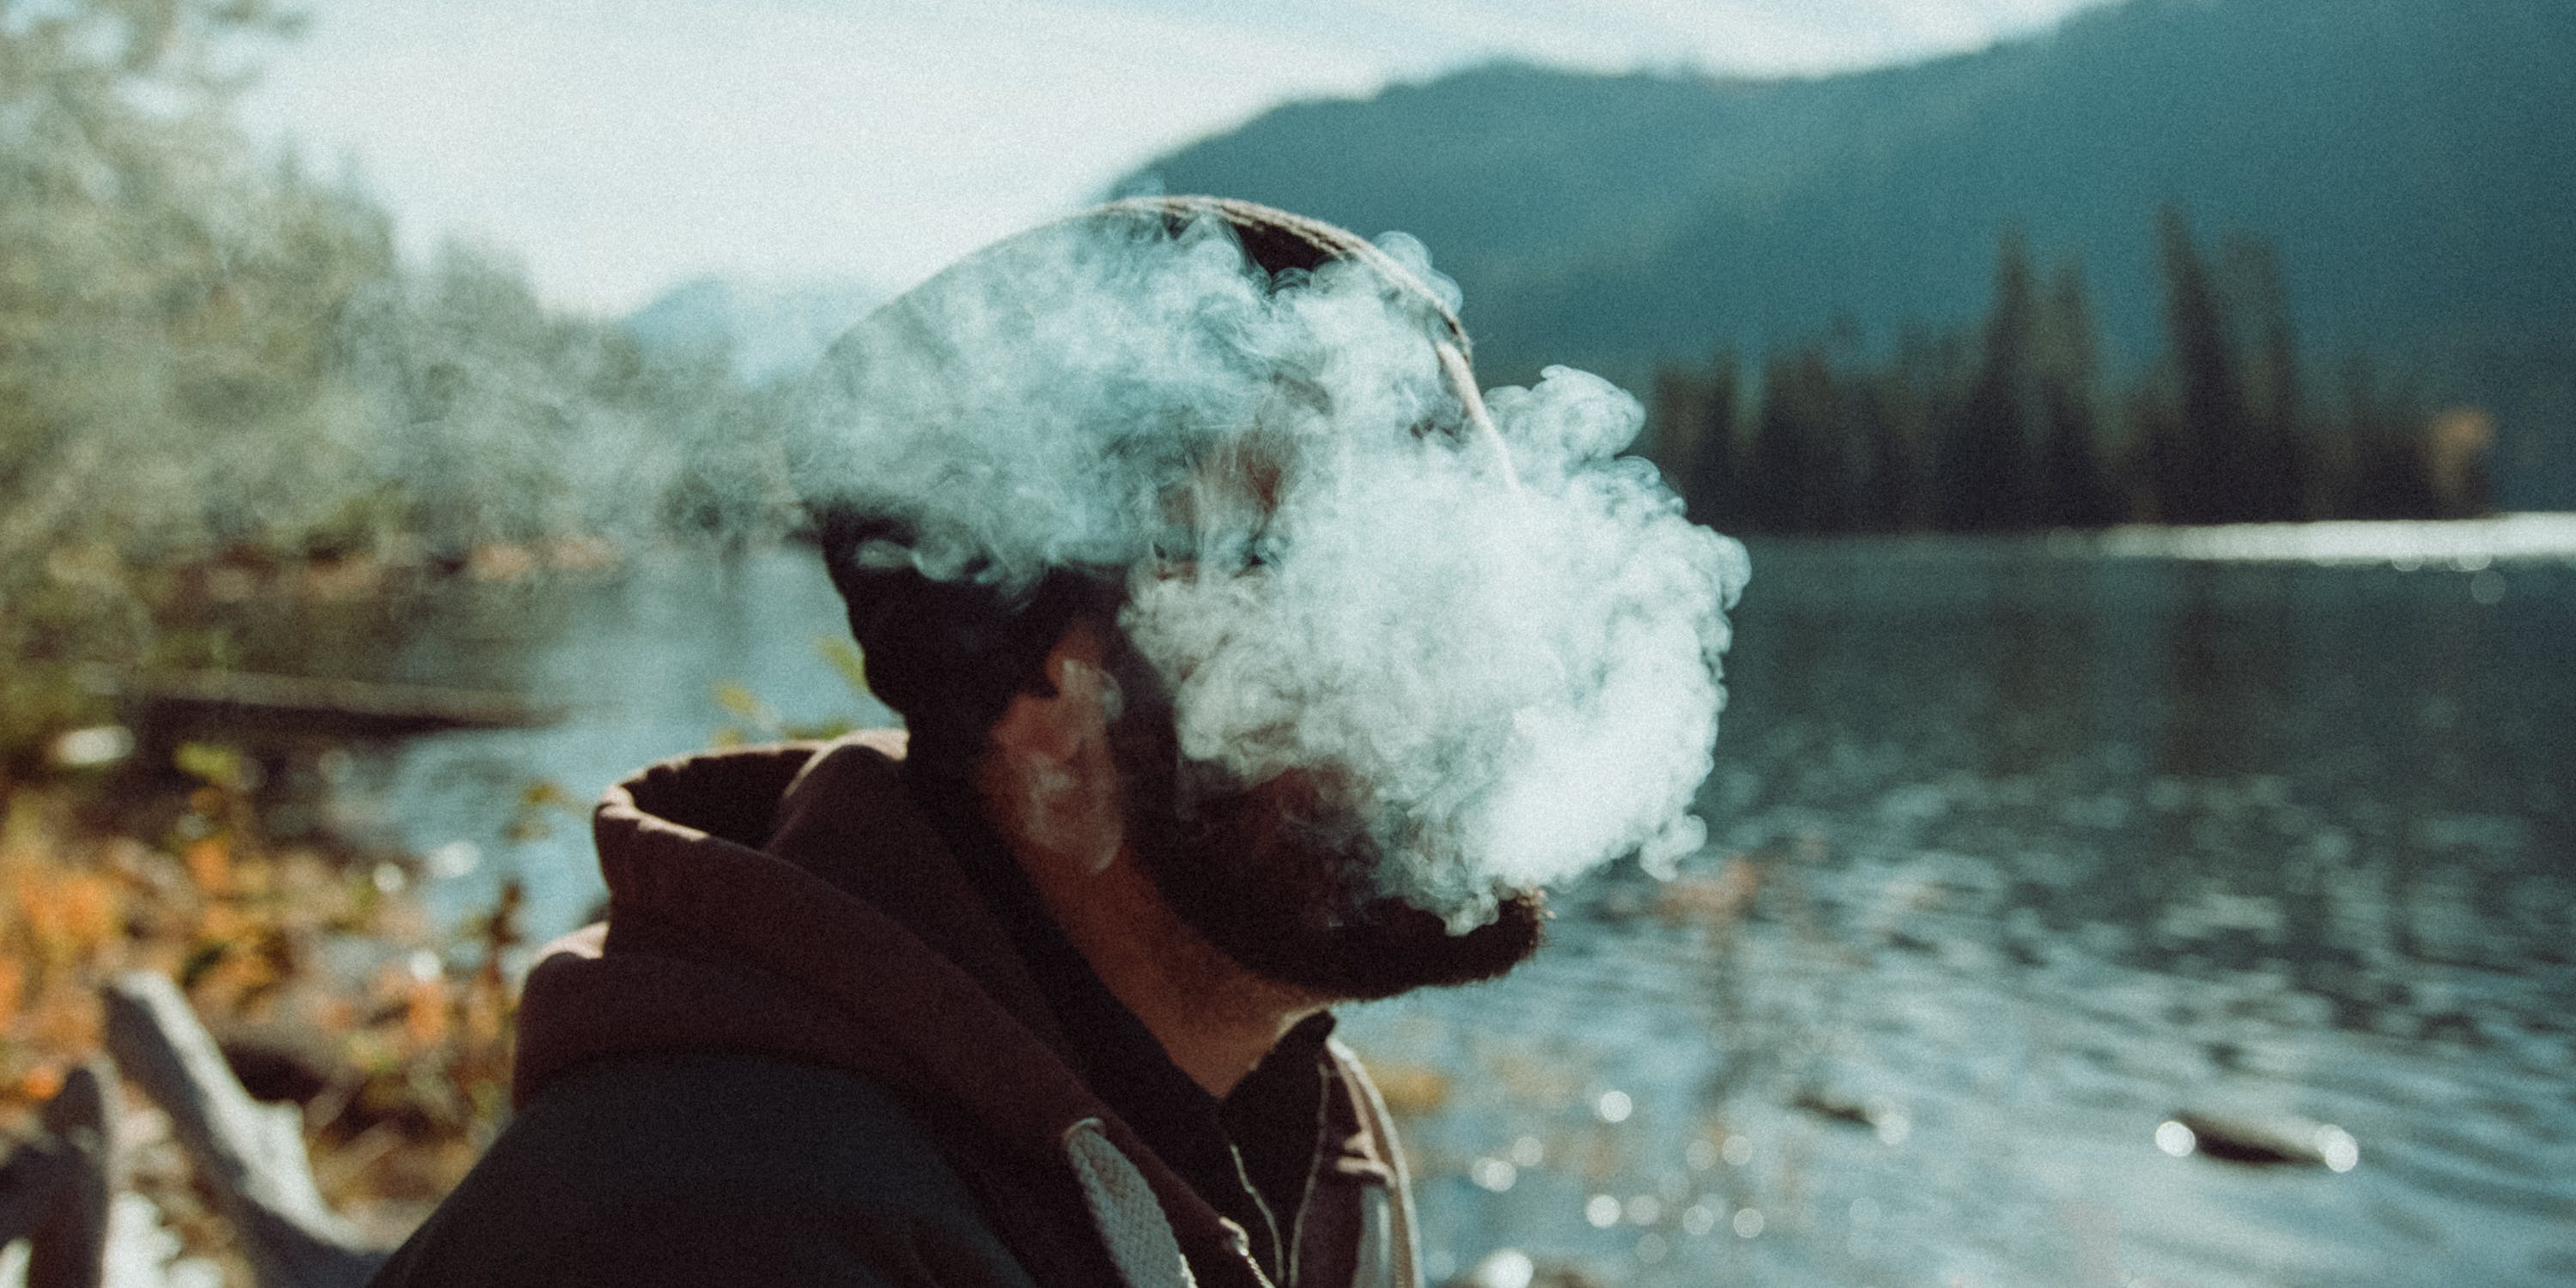 Man smoking cannabis with the polar blast on an ice cold mountain